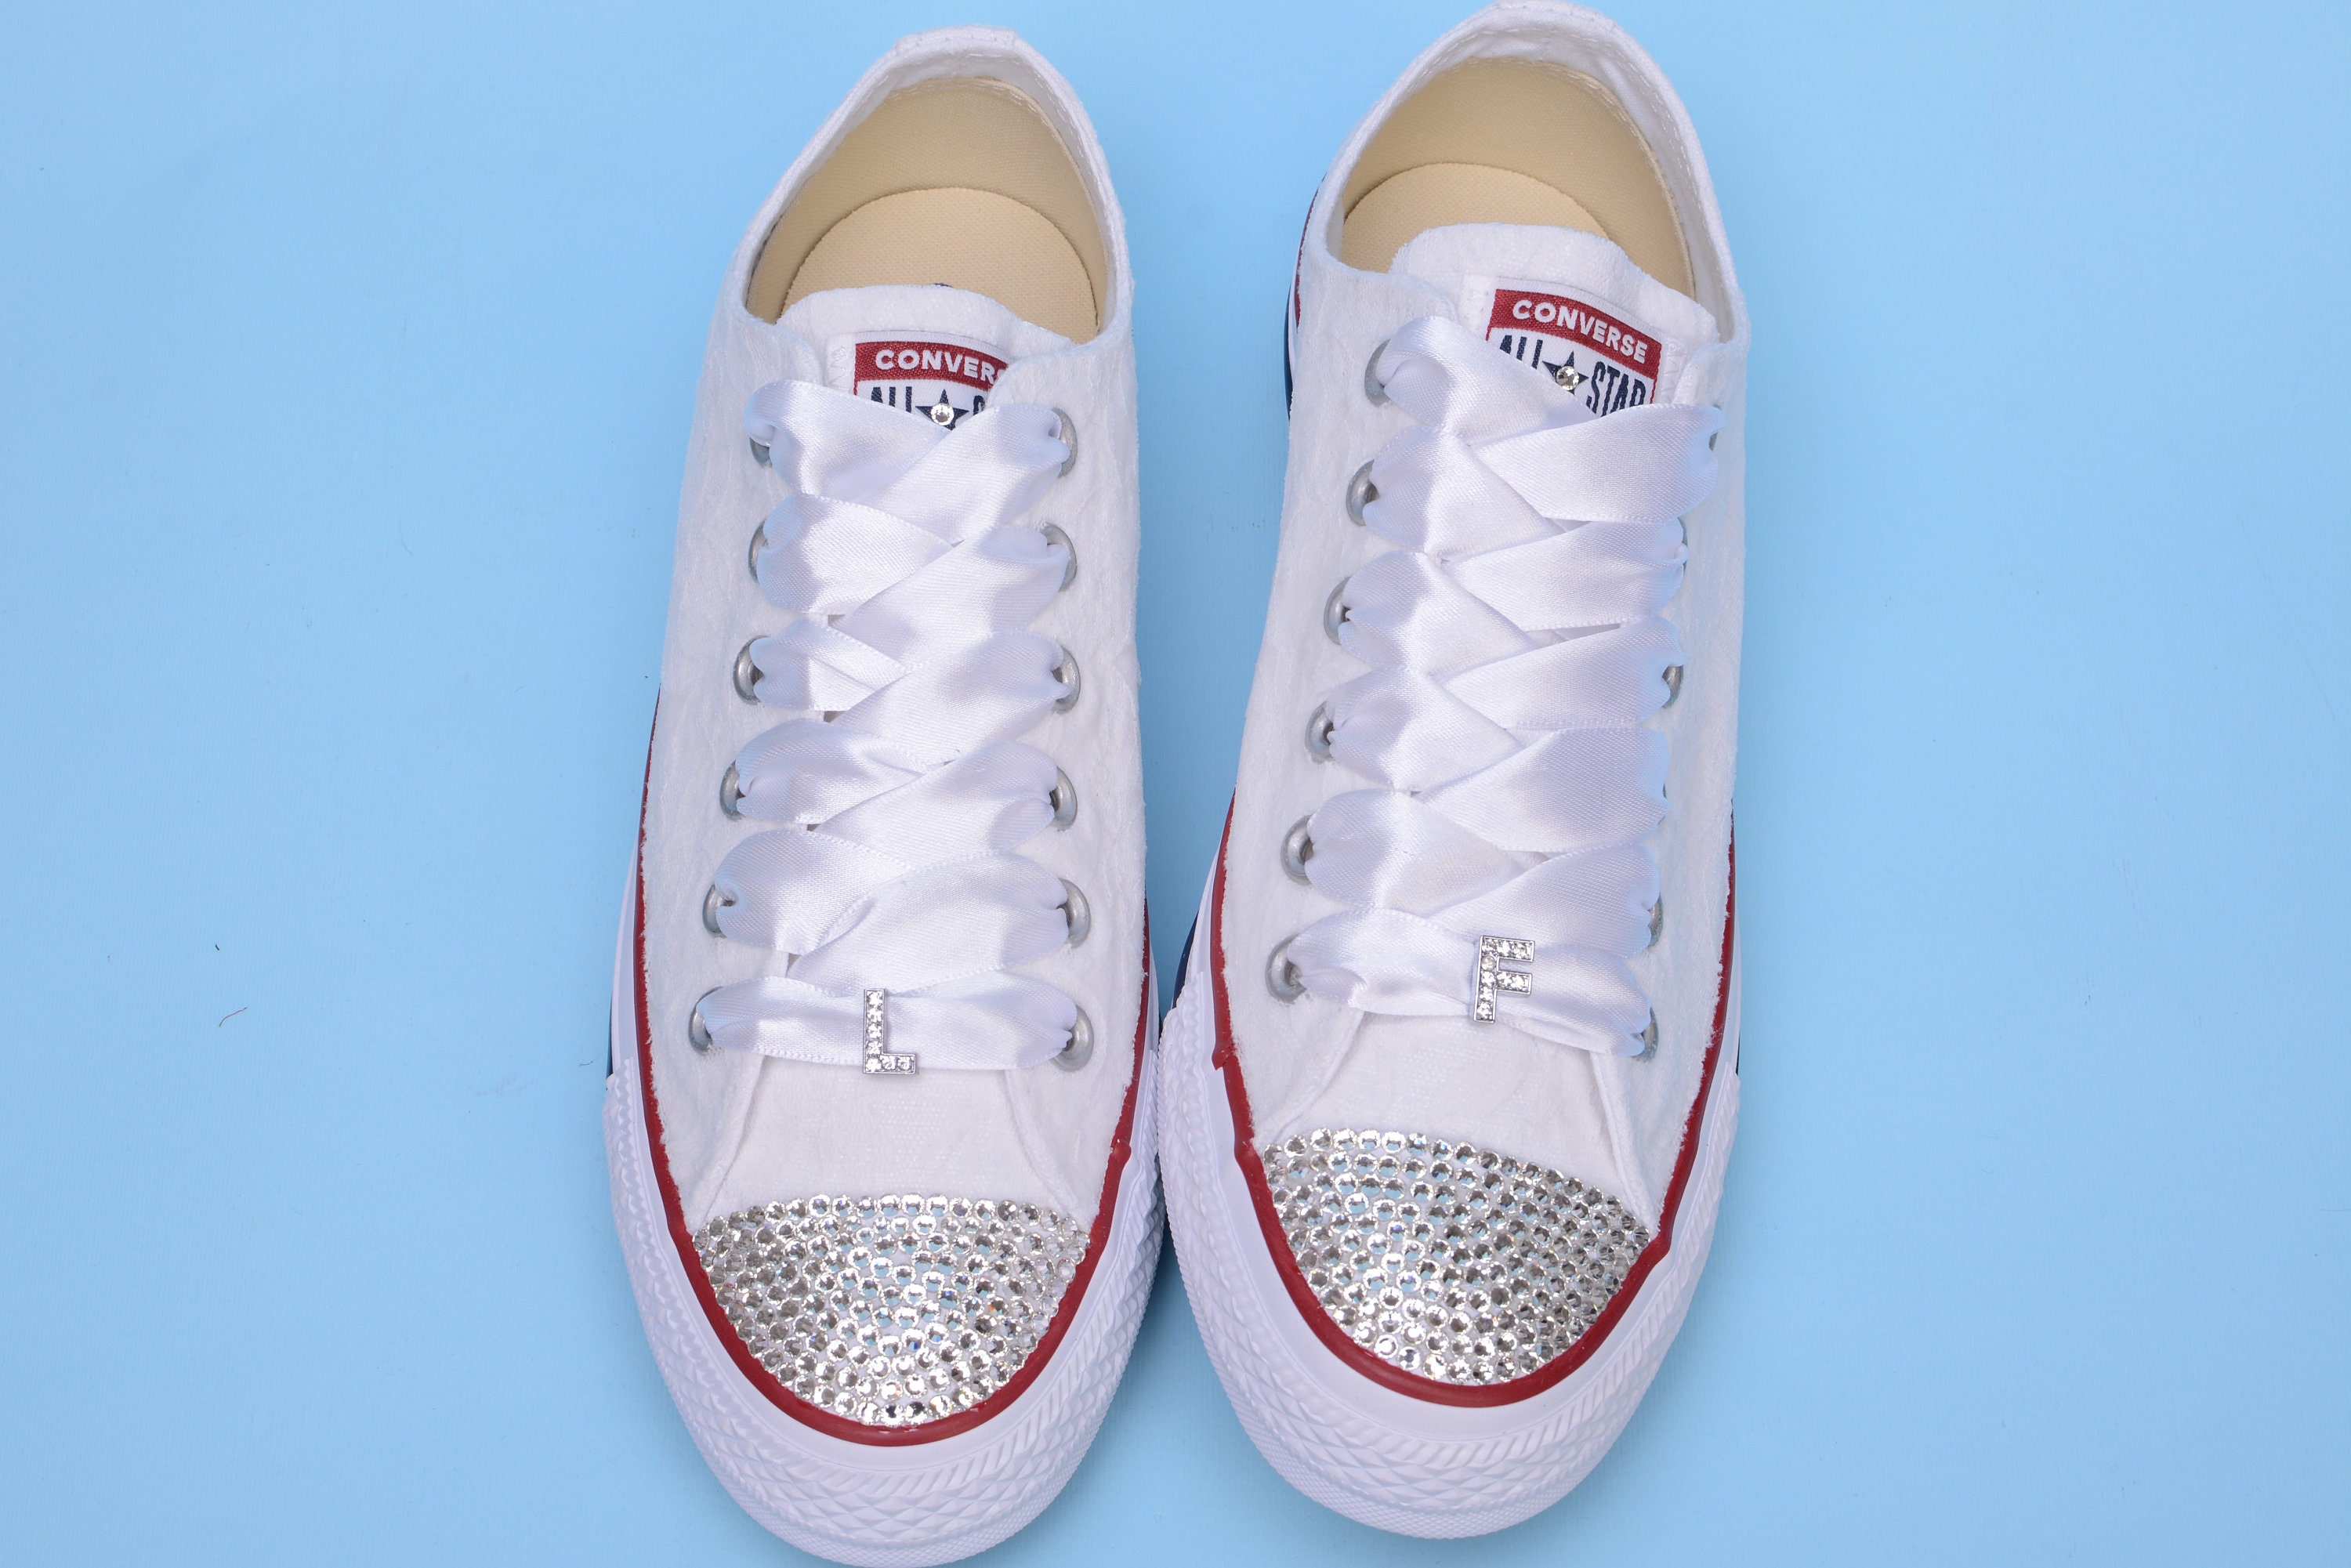 f965ffe784c34 Personalized Bling Wedding Sneakers For Bride, Lace Converse for ...